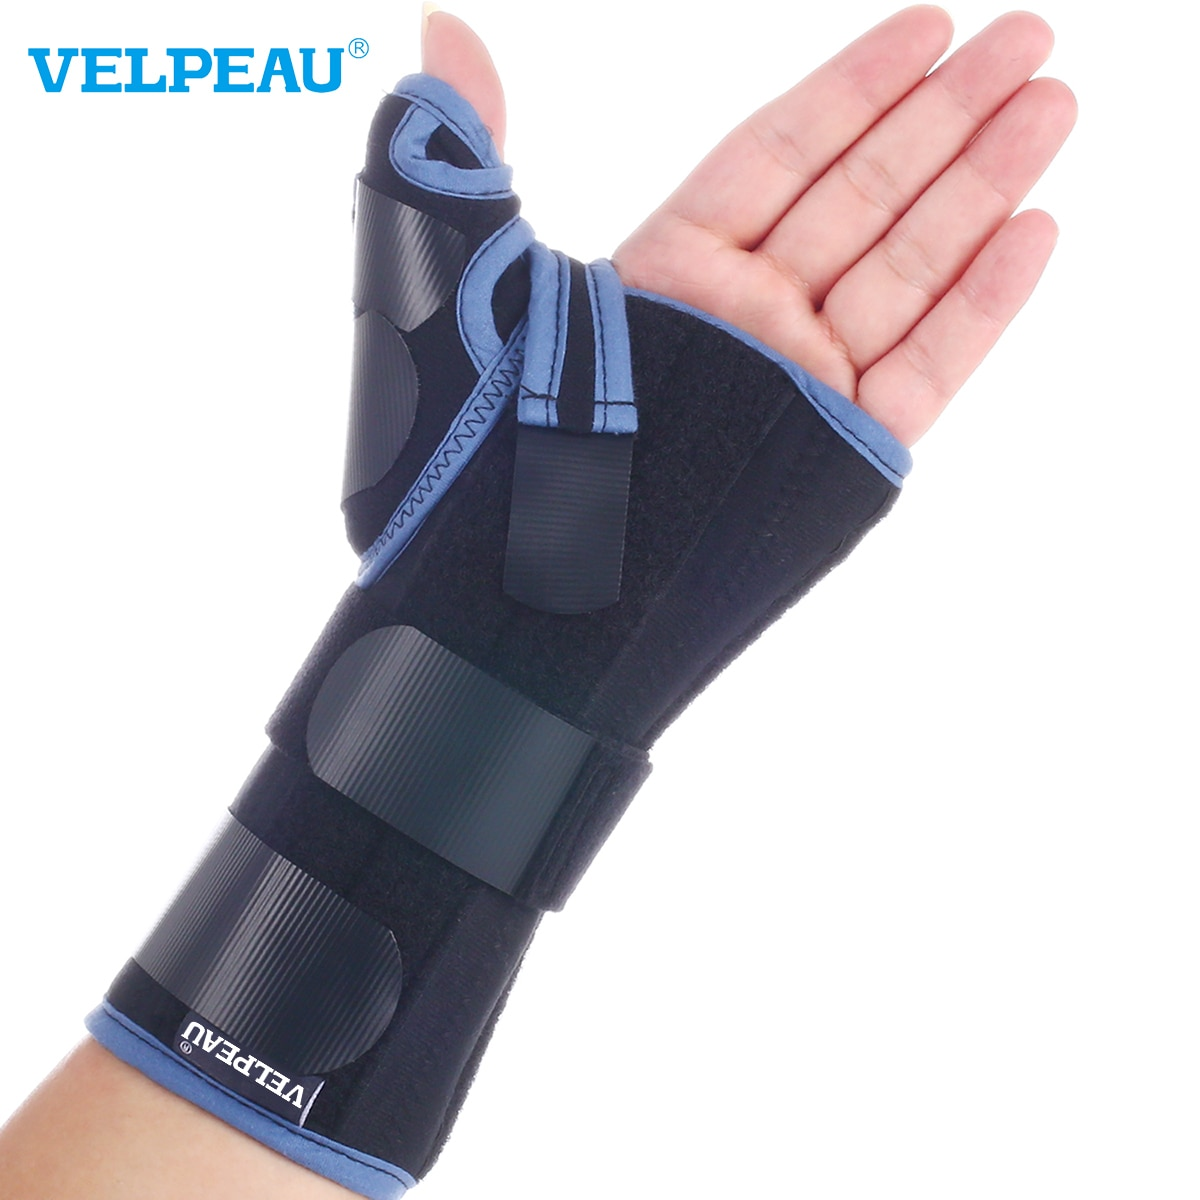 VELPEAU Professional Tenosynovitis Thumb Protector Wrist and Thumb Supporter Fracture Sprain Fixed S